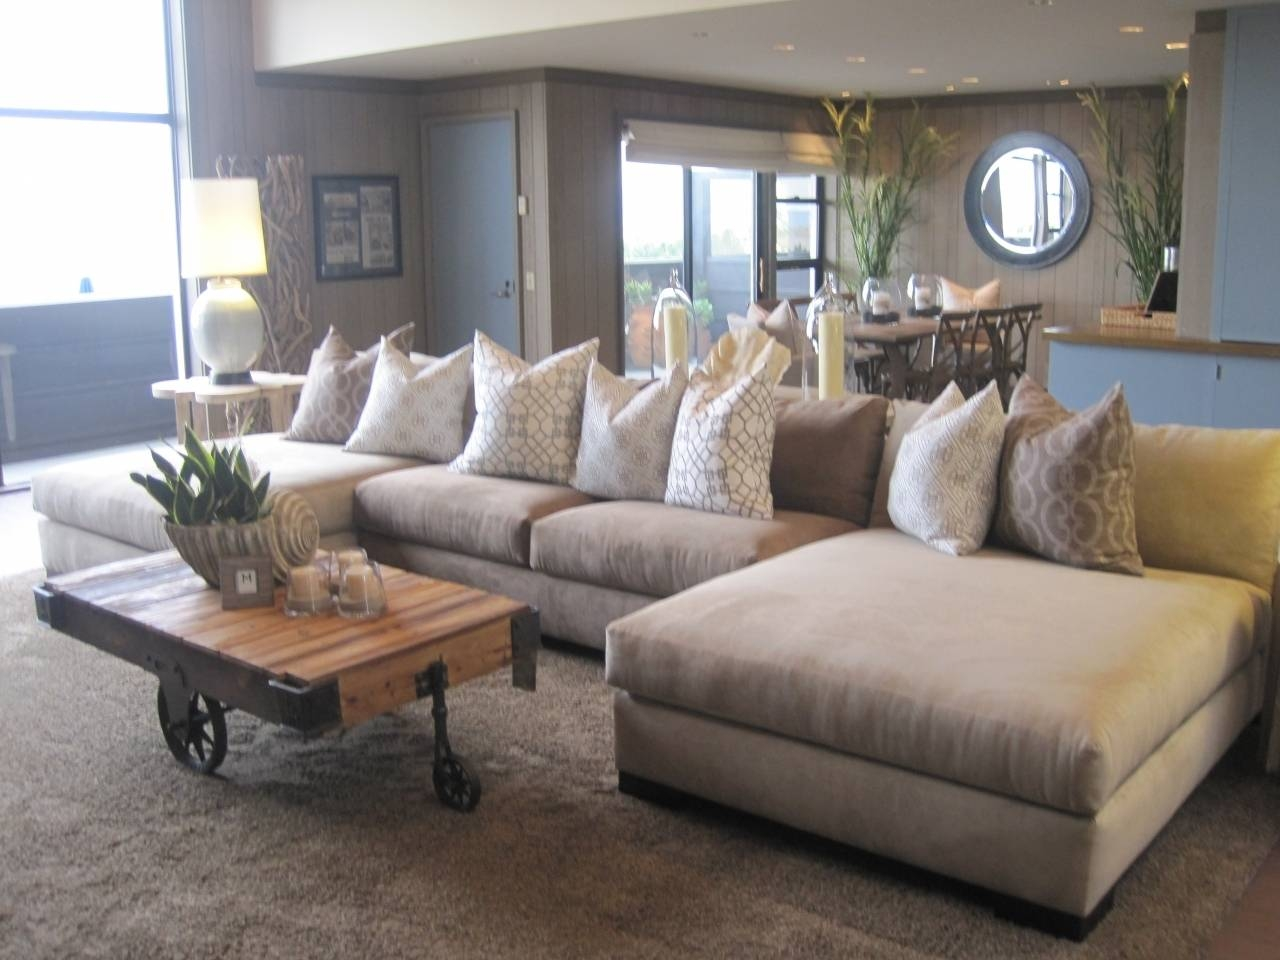 Oversized Sectional Sofa | Roselawnlutheran throughout Sectional Sofa With Large Ottoman (Image 19 of 30)